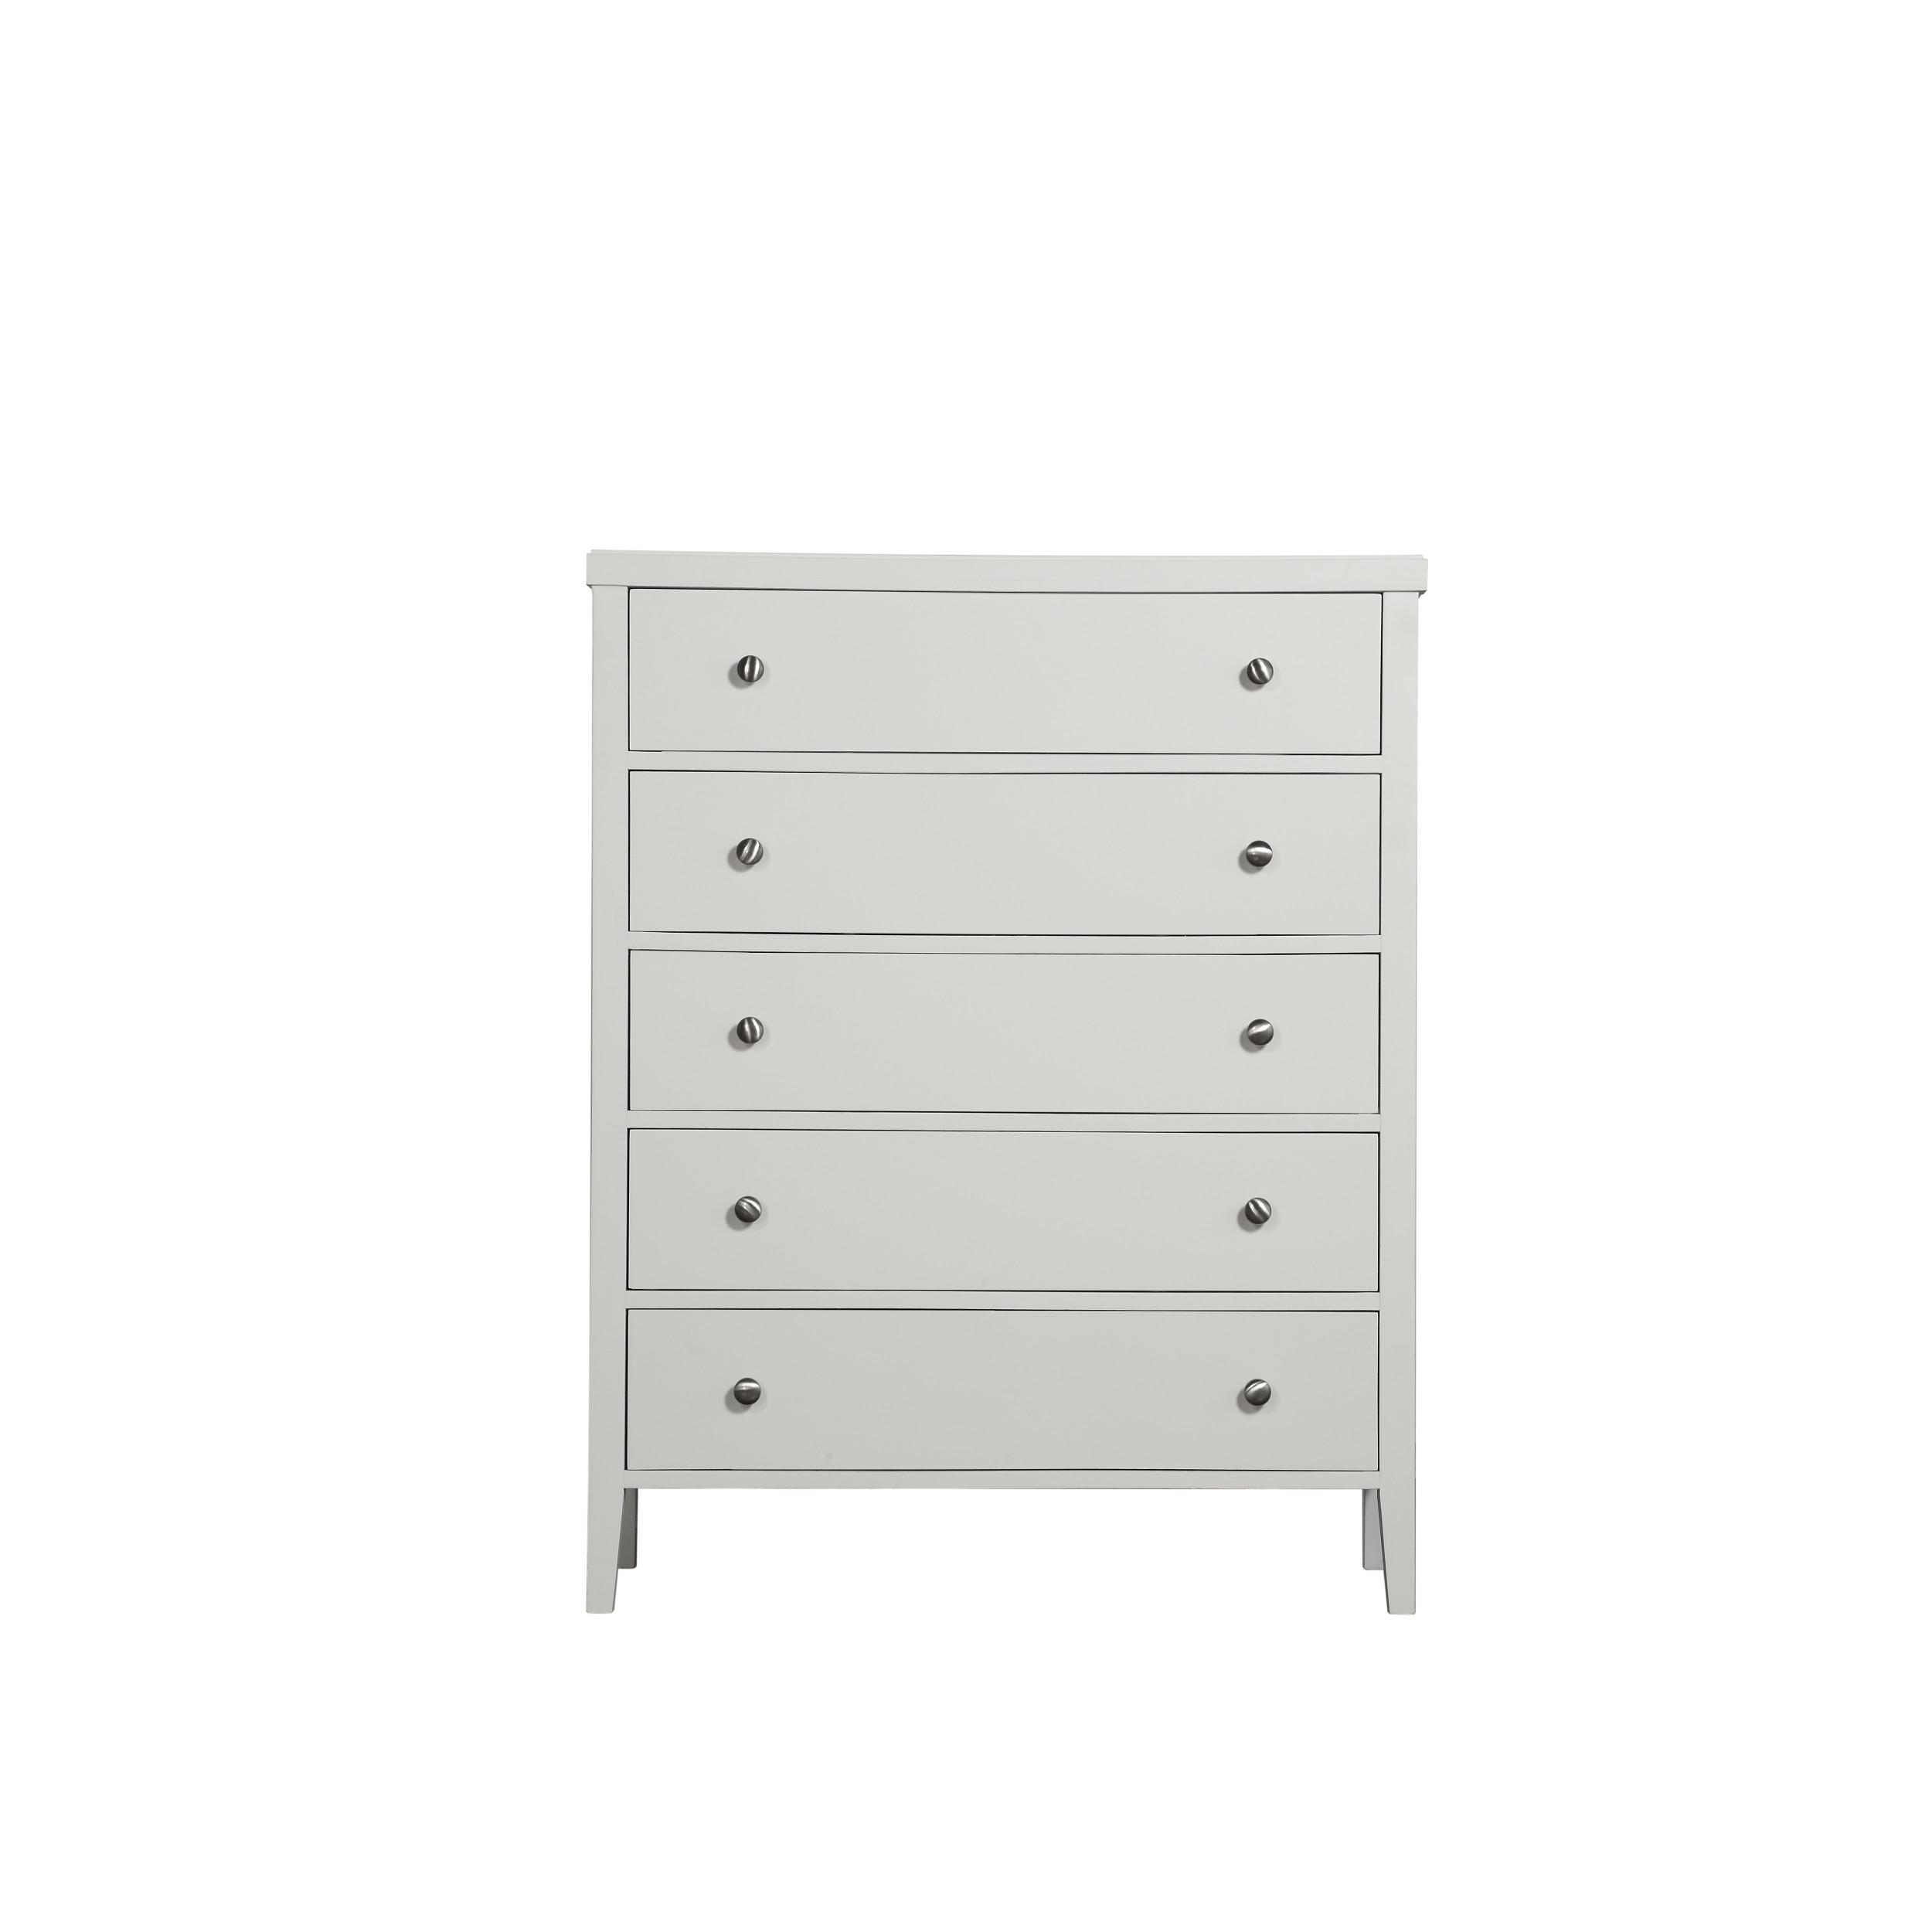 Emerald Home Decor III White 5 Drawers Dresser Click To Enlarge